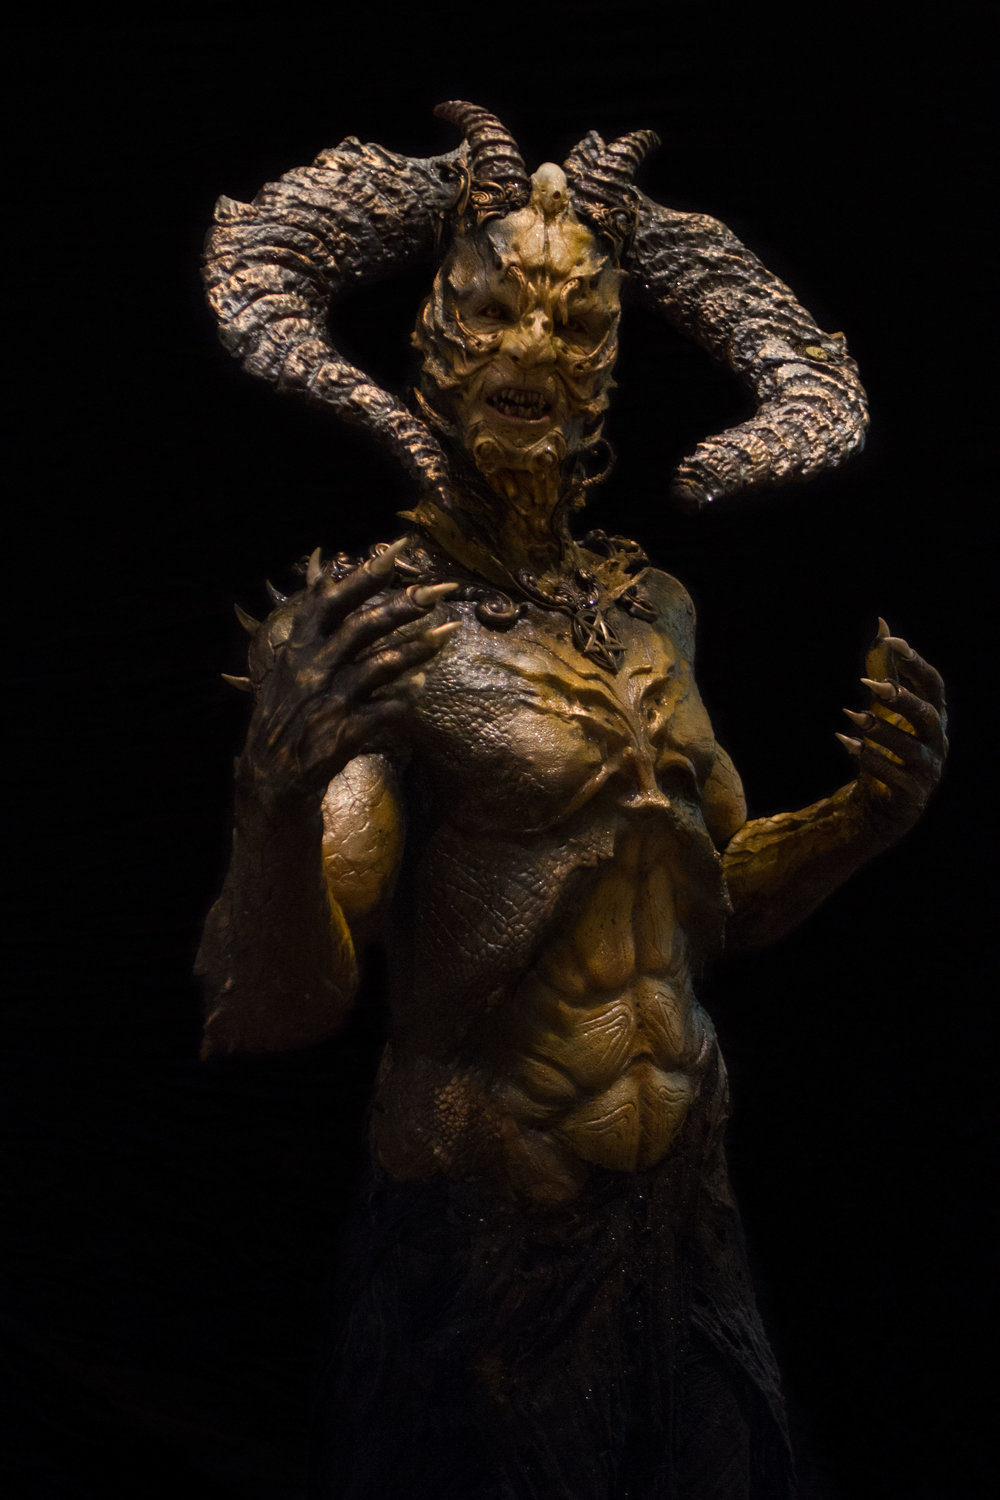 Nomen Illis Legio demon (special effects by FX Creator (Vlad Taupesh & Josef Rarach) Photo by KyleReaPhotography.com)